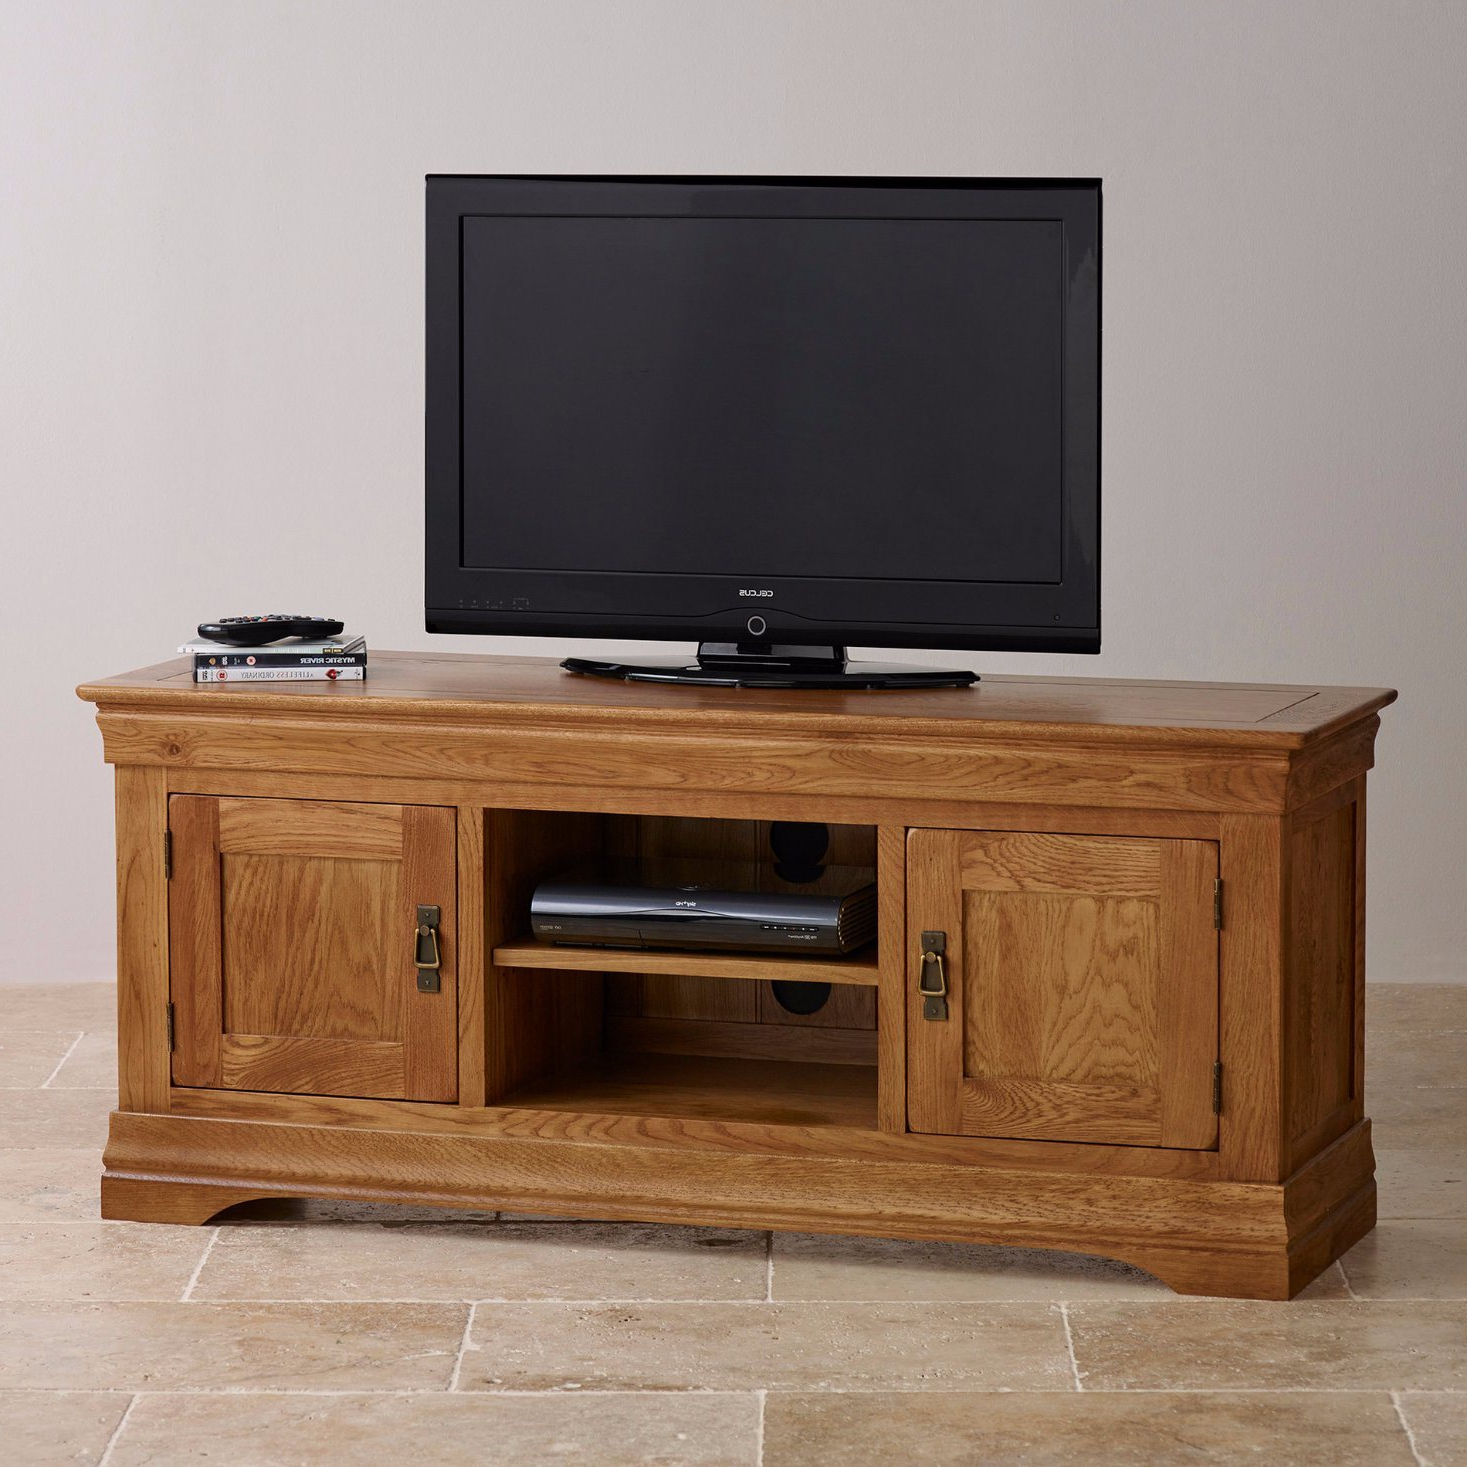 Fashionable Wide Screen Tv Stands Throughout China Rustic Vintage Oak Solid Wood Wide Screen Tv Stand Cabinet (Gallery 5 of 20)